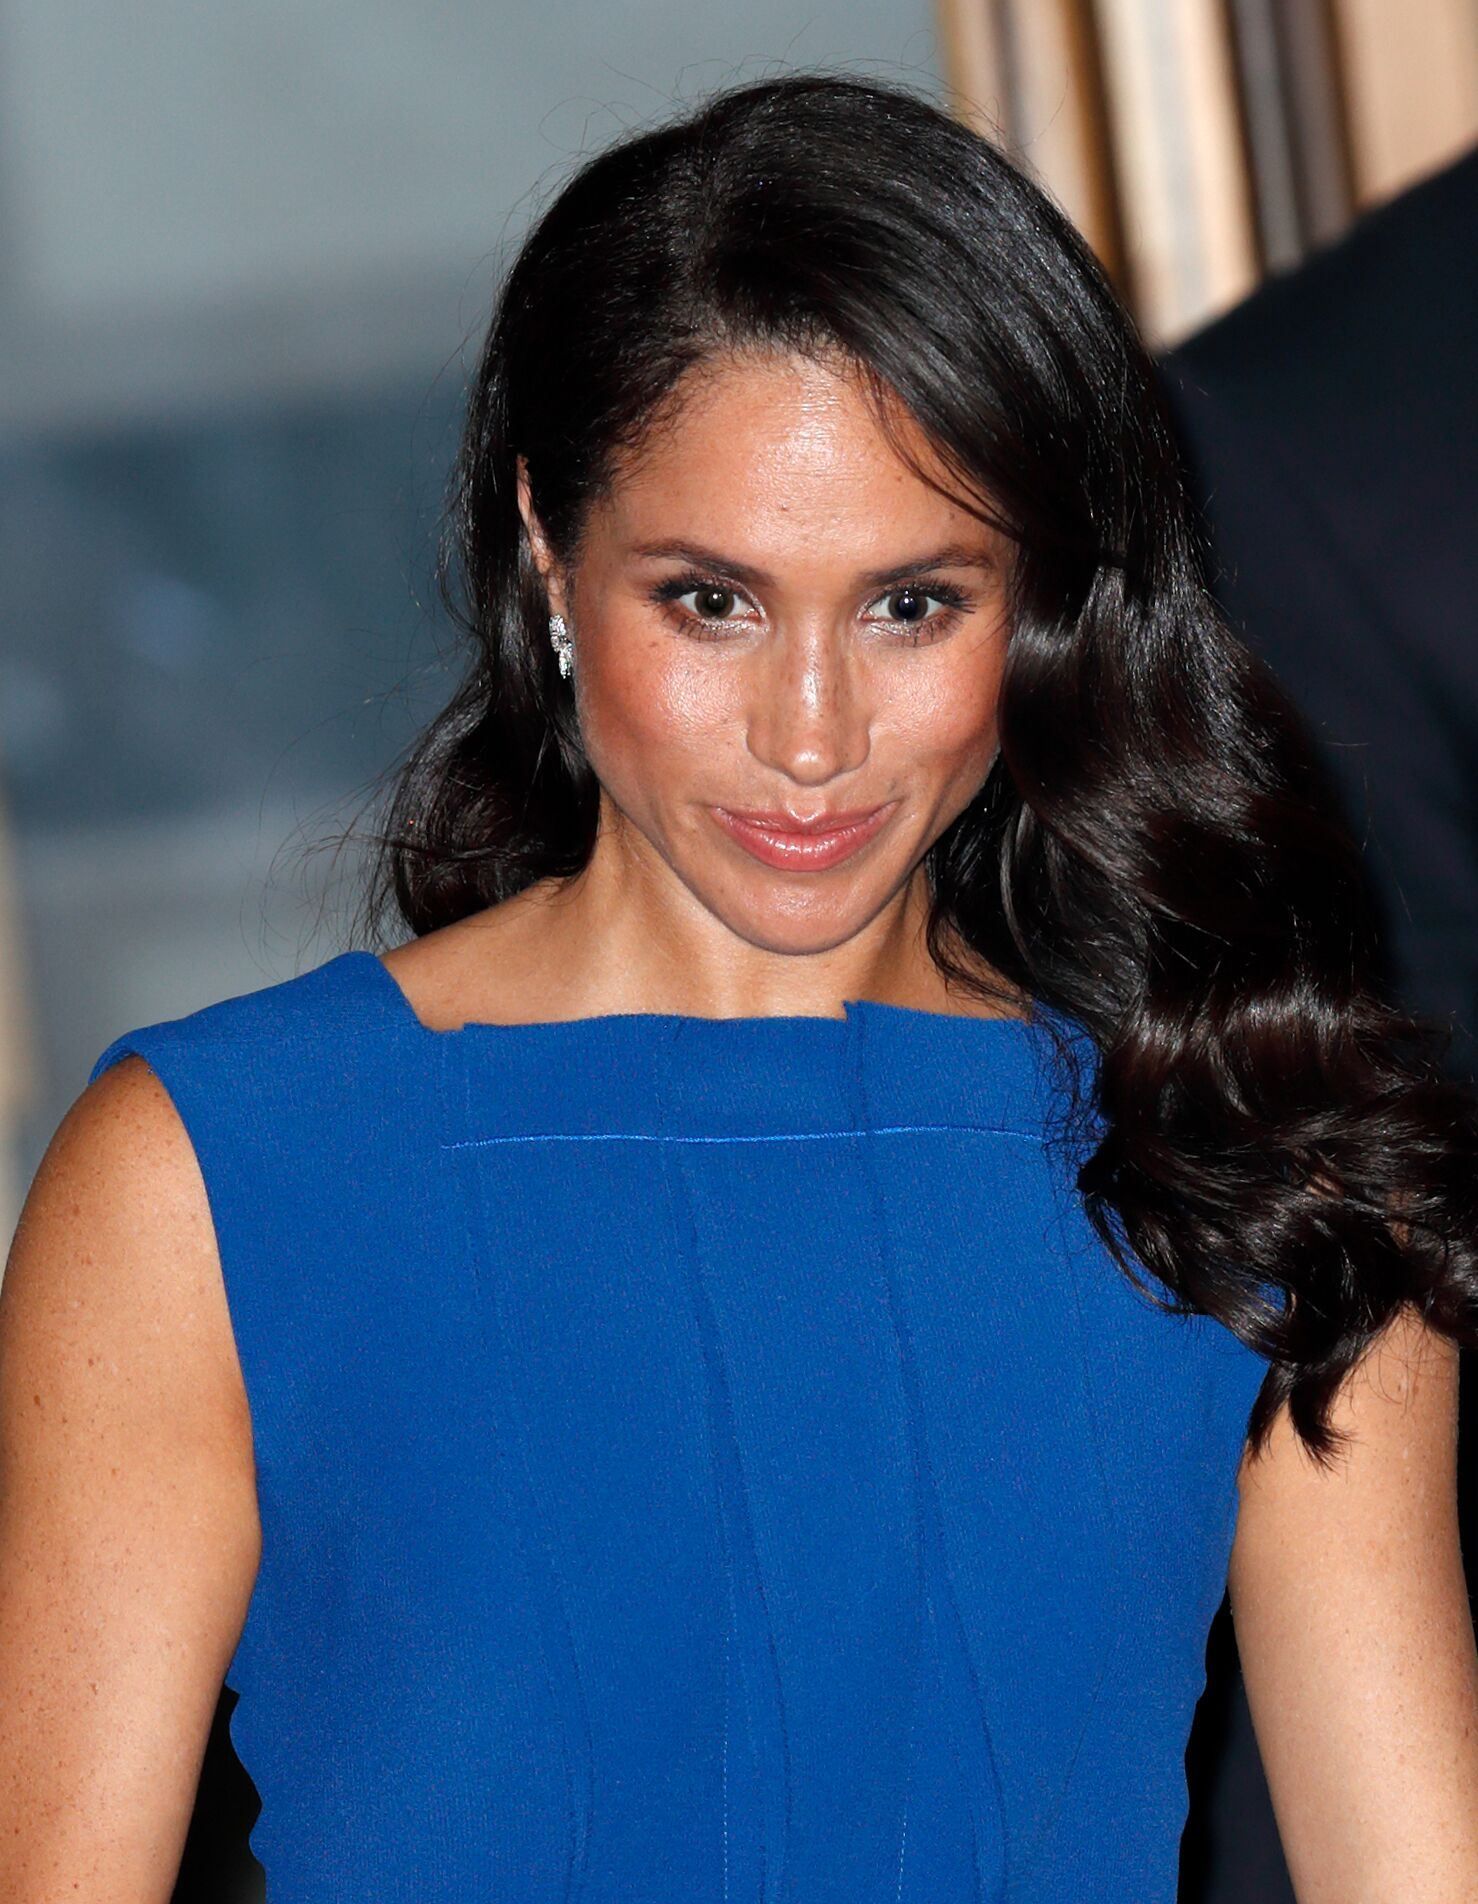 Meghan Markle. Image Credit: Getty Images